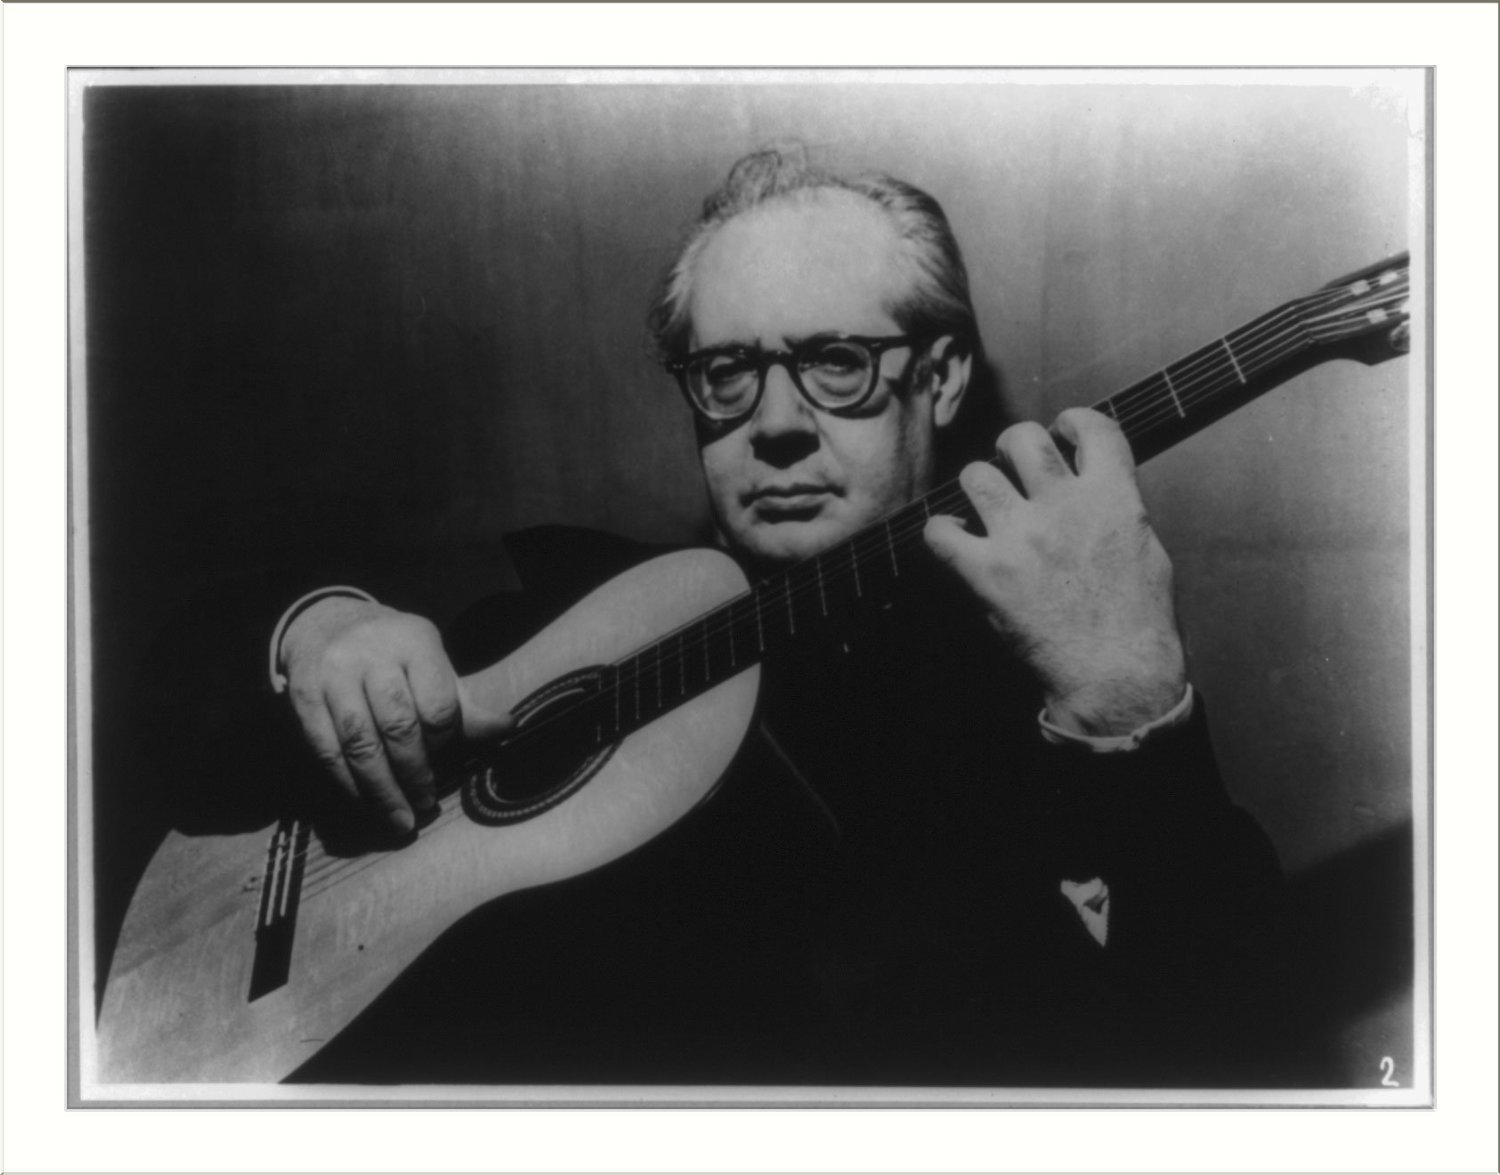 The great Andres Segovia